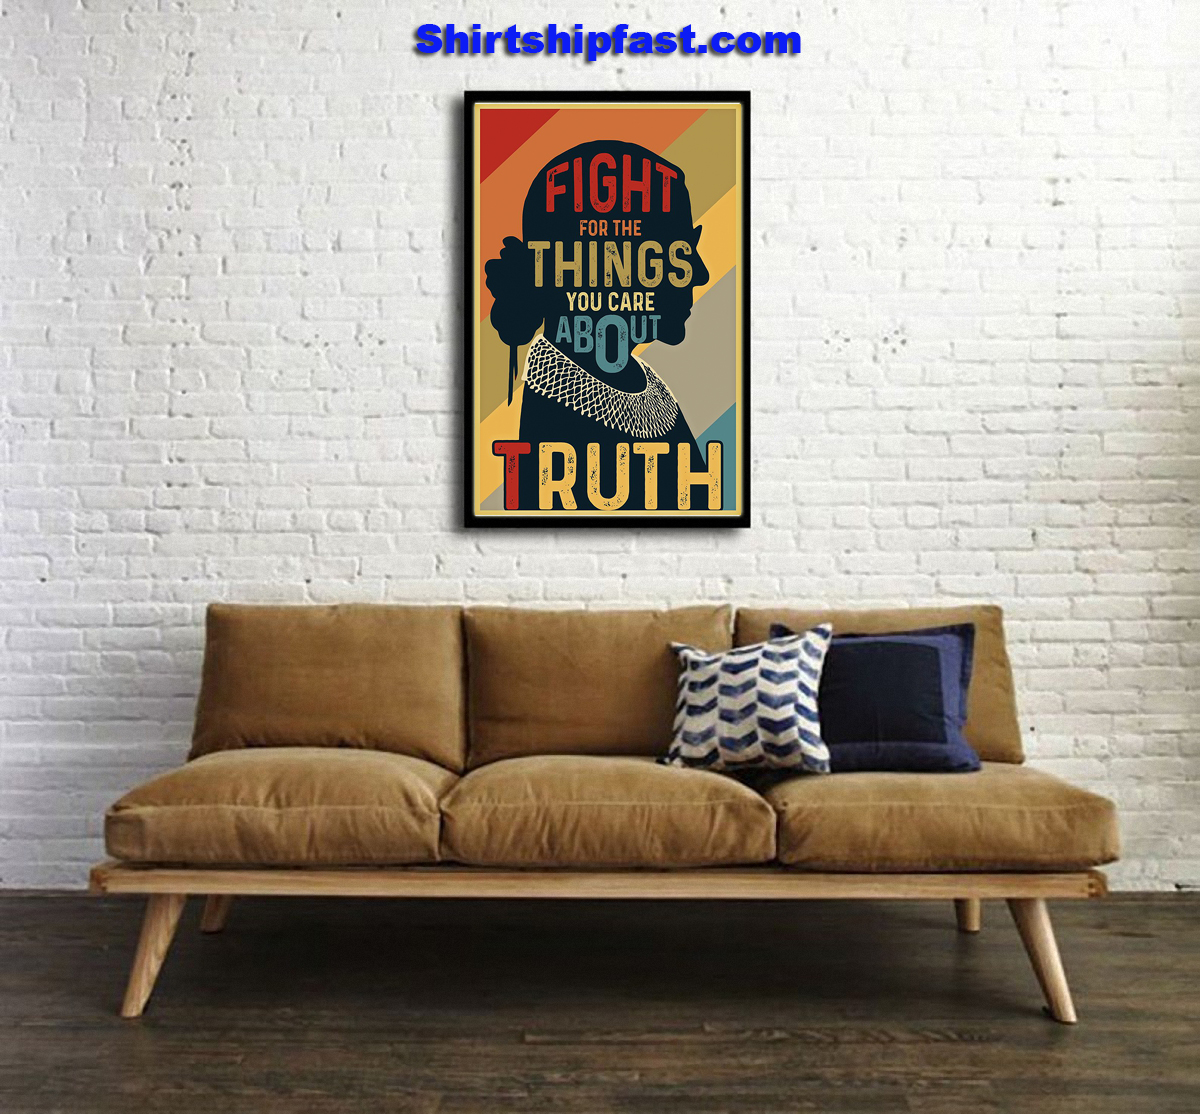 RBG fight for the things you care about truth poster - Picture 2